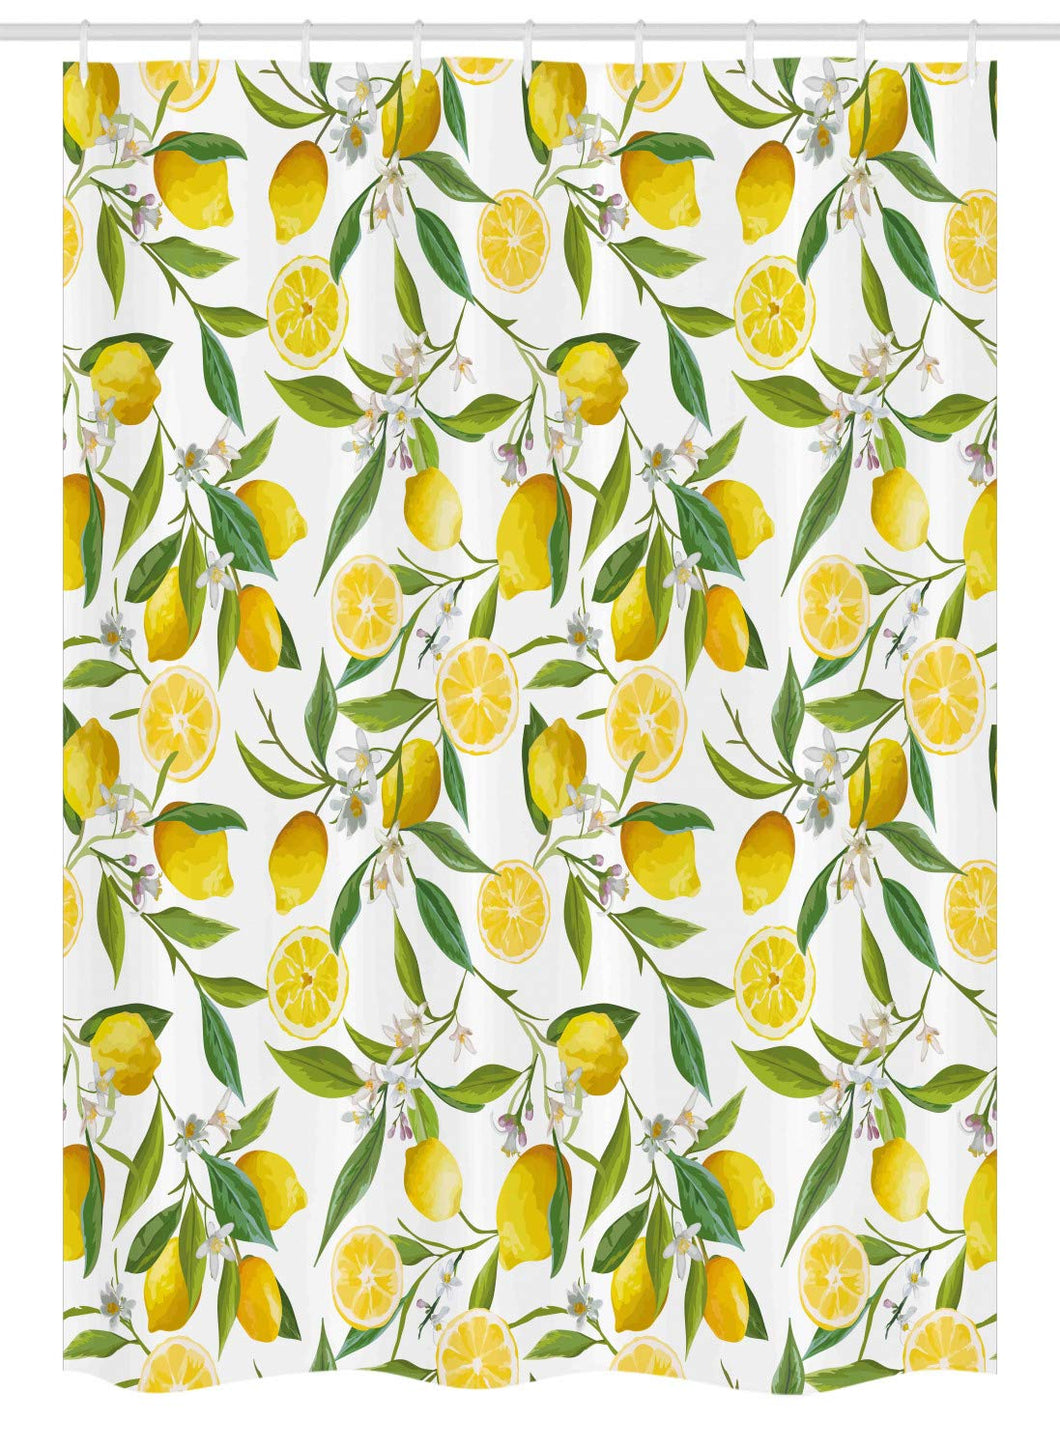 Ambesonne Nature Stall Shower Curtain, Exotic Lemon Tree Branches Yummy Delicious Kitchen Gardening Design, Fabric Bathroom Decor Set with Hooks, 54